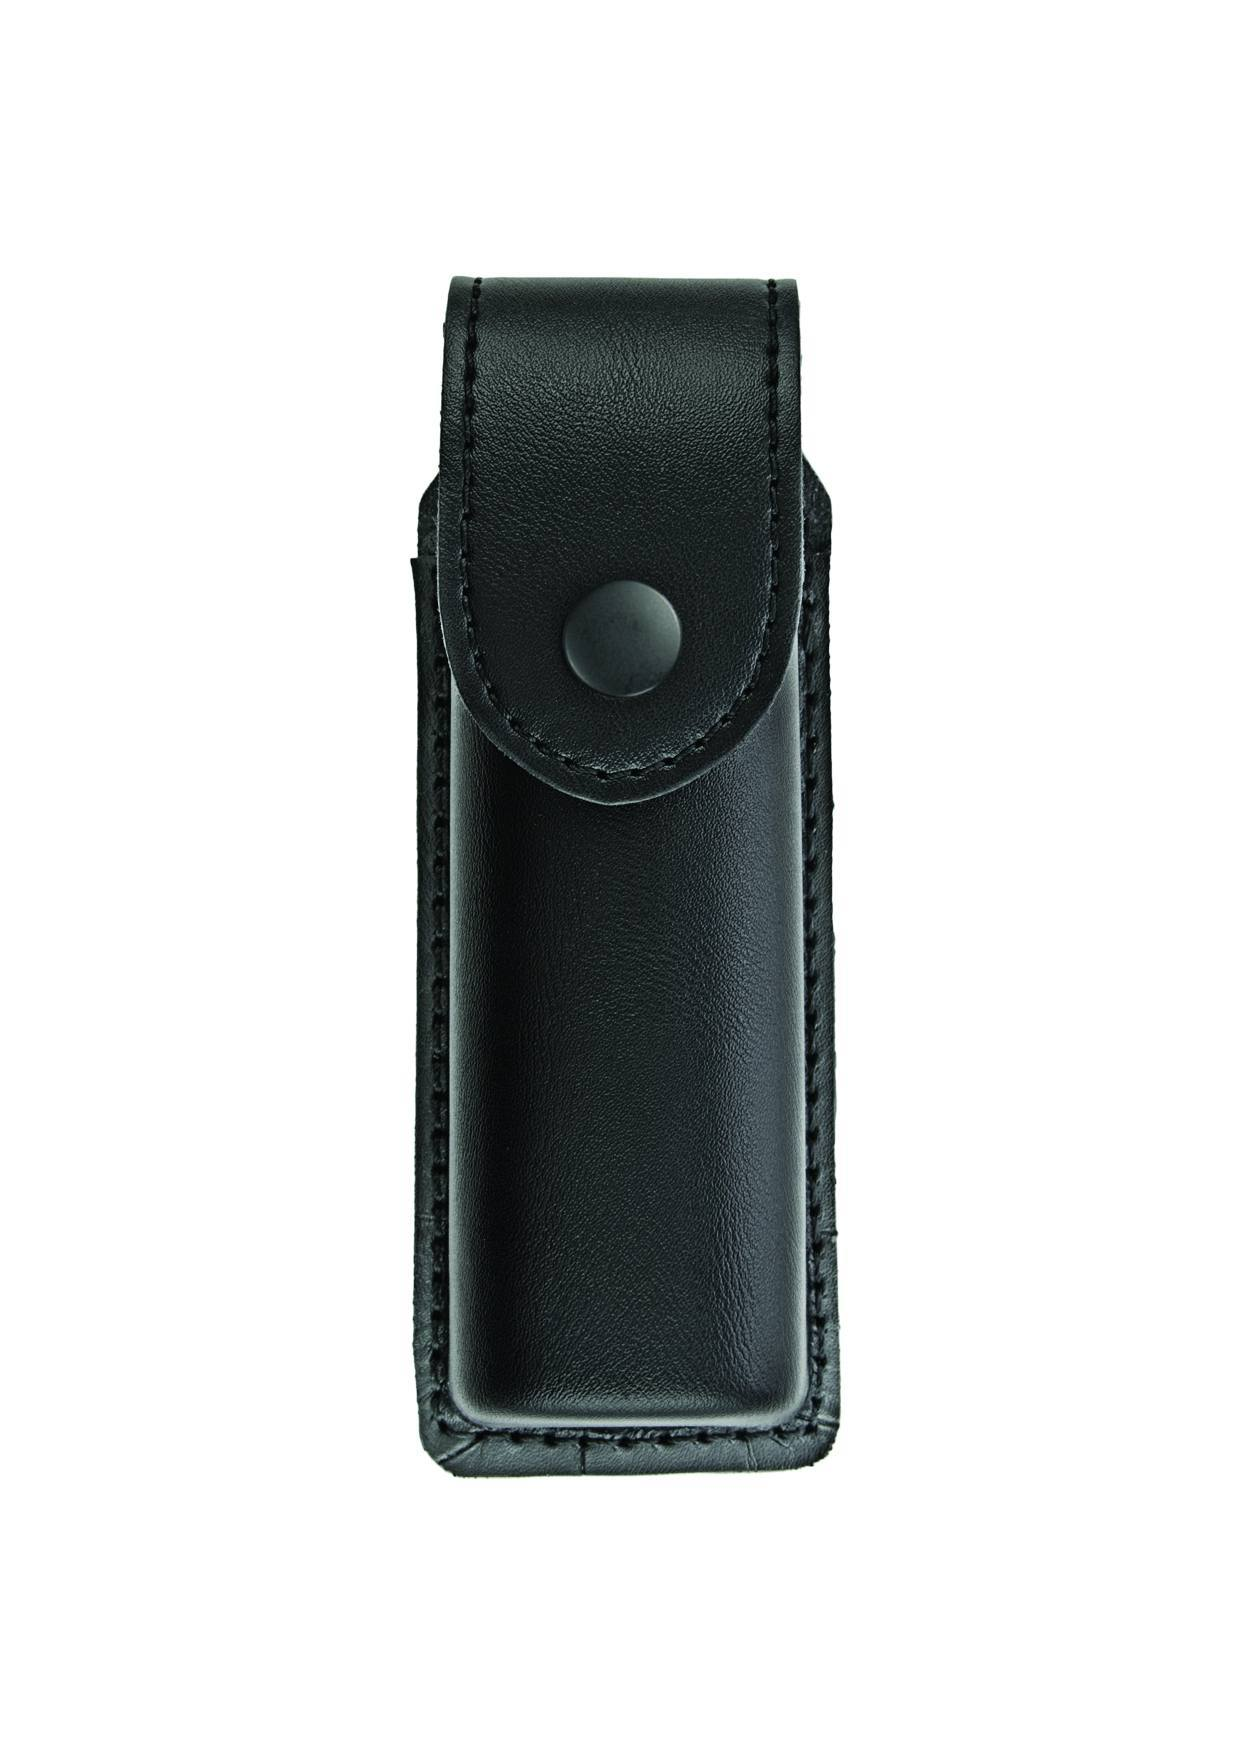 O.C. (Pepper) Spray Case, Medium, MK4, AirTek, Smooth, Black Snap-